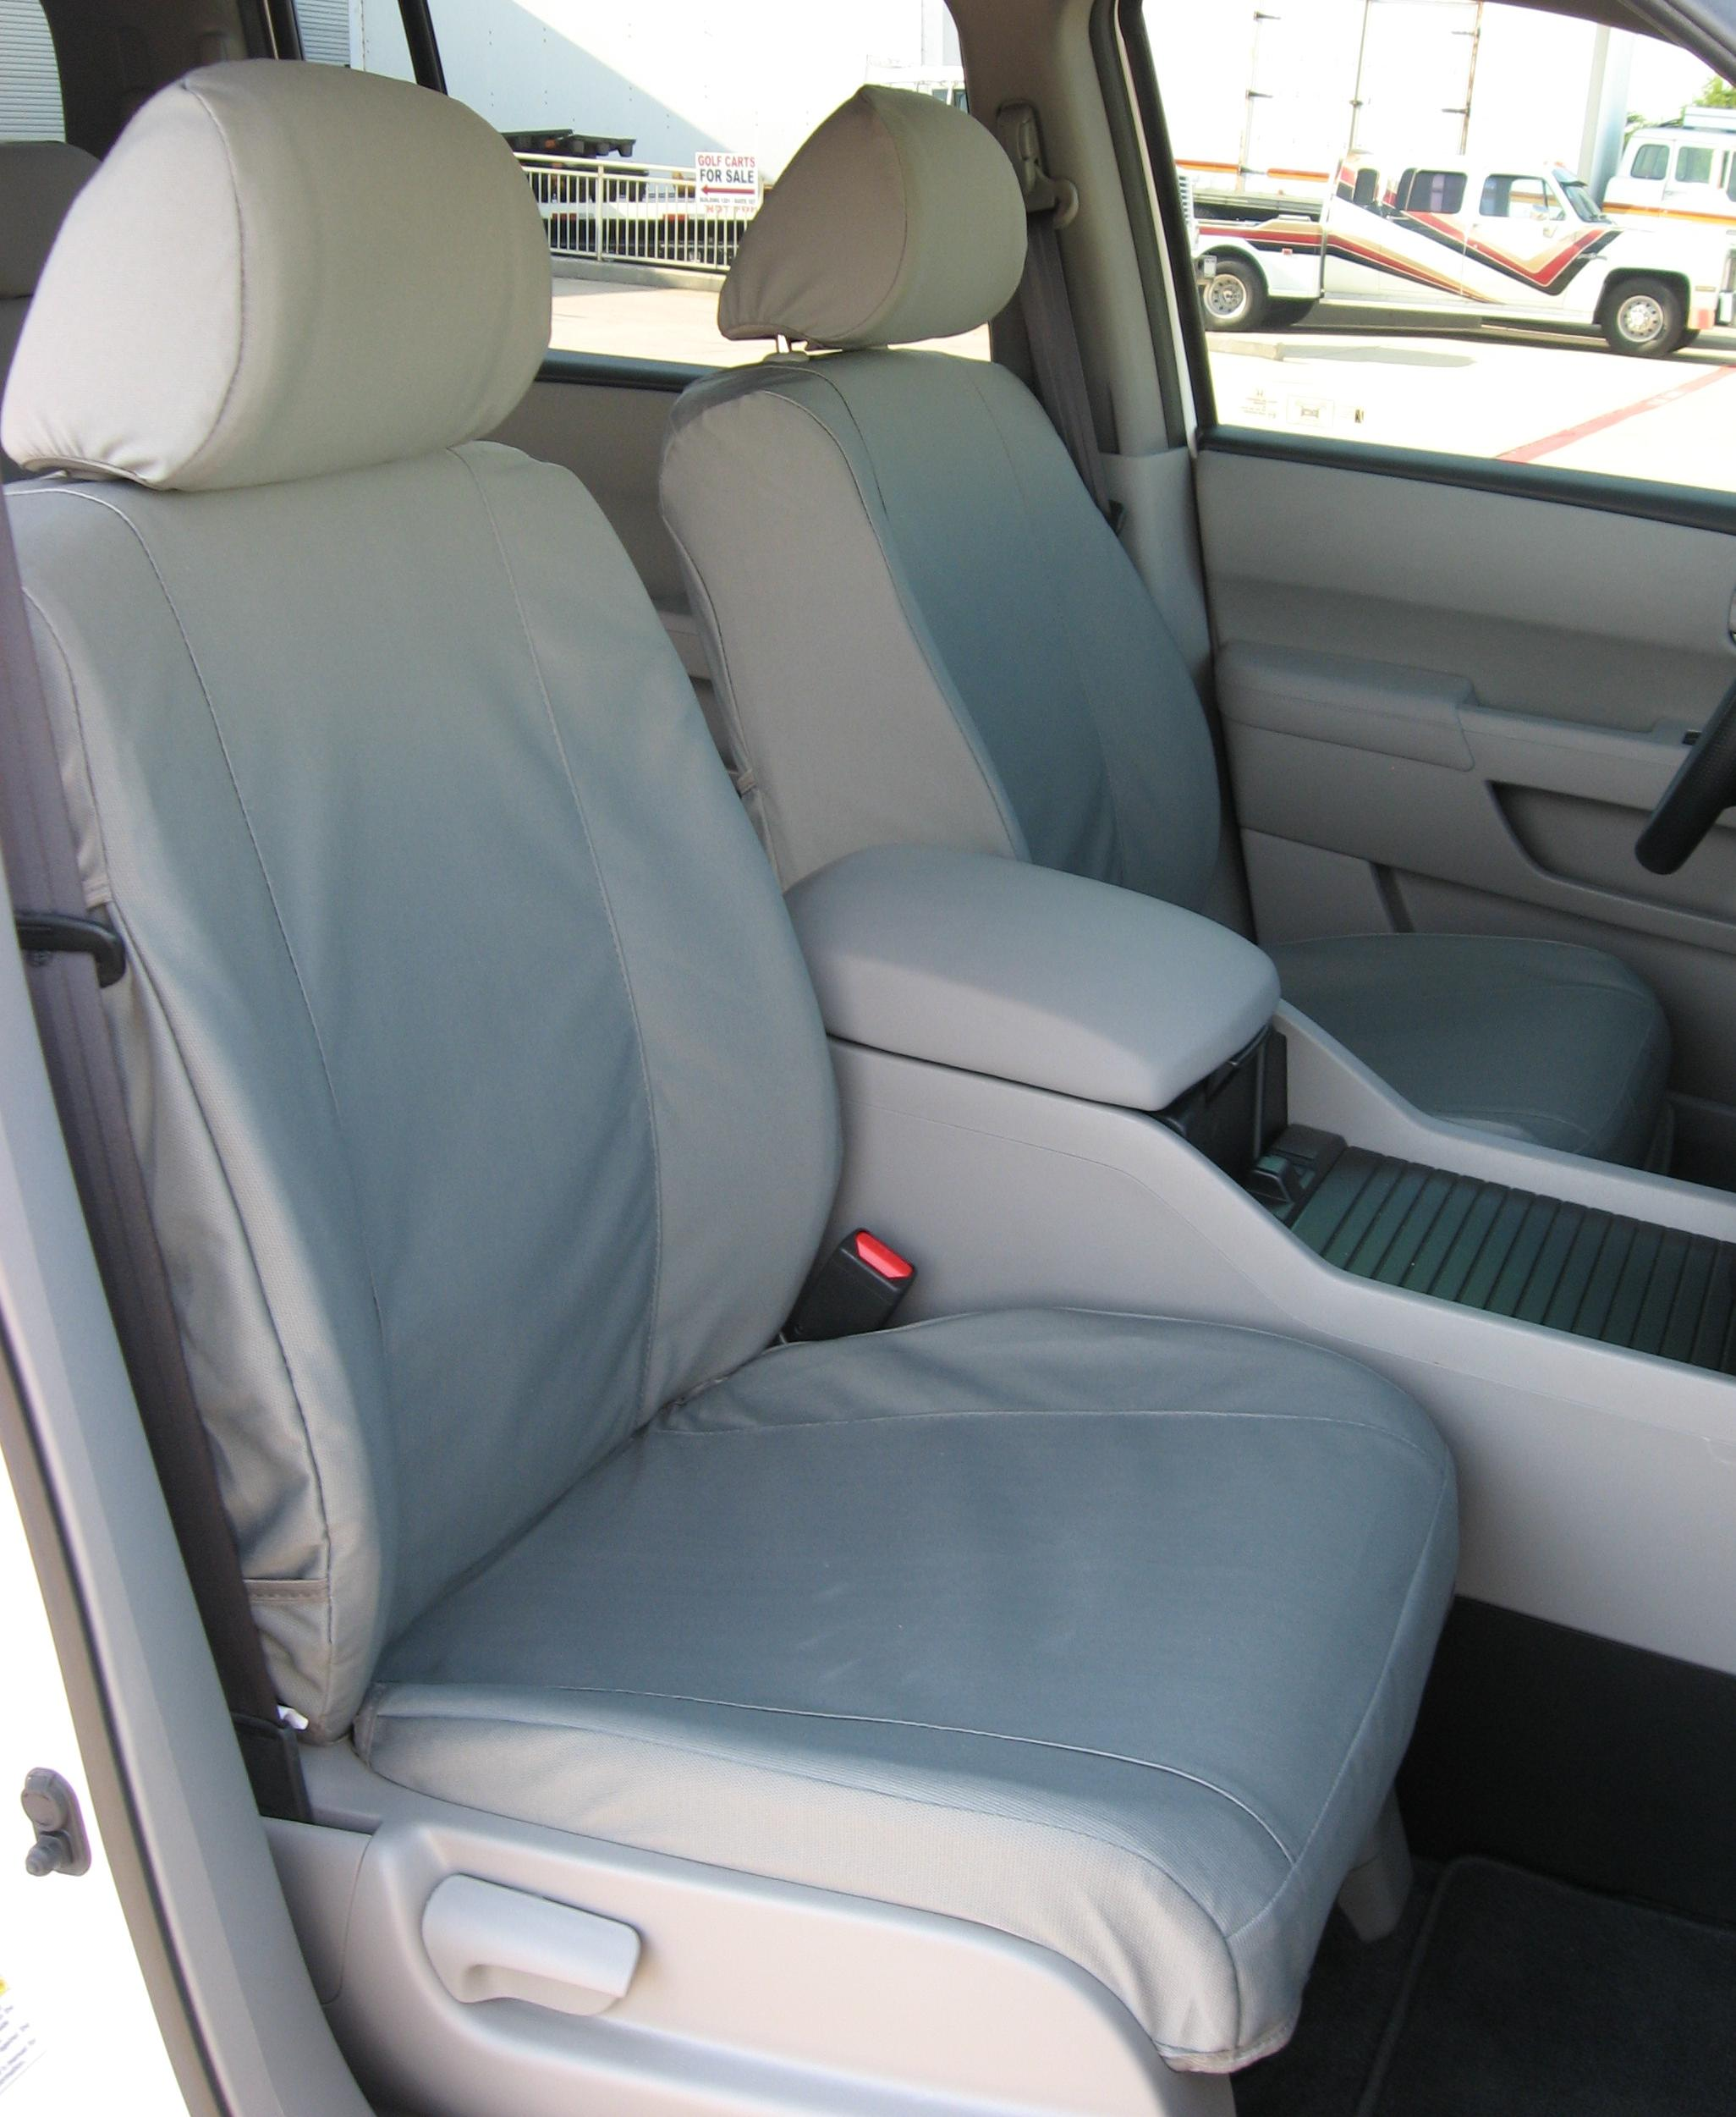 2009 2013 honda pilot front bucket seats with side impact airbags durafit covers custom fit. Black Bedroom Furniture Sets. Home Design Ideas